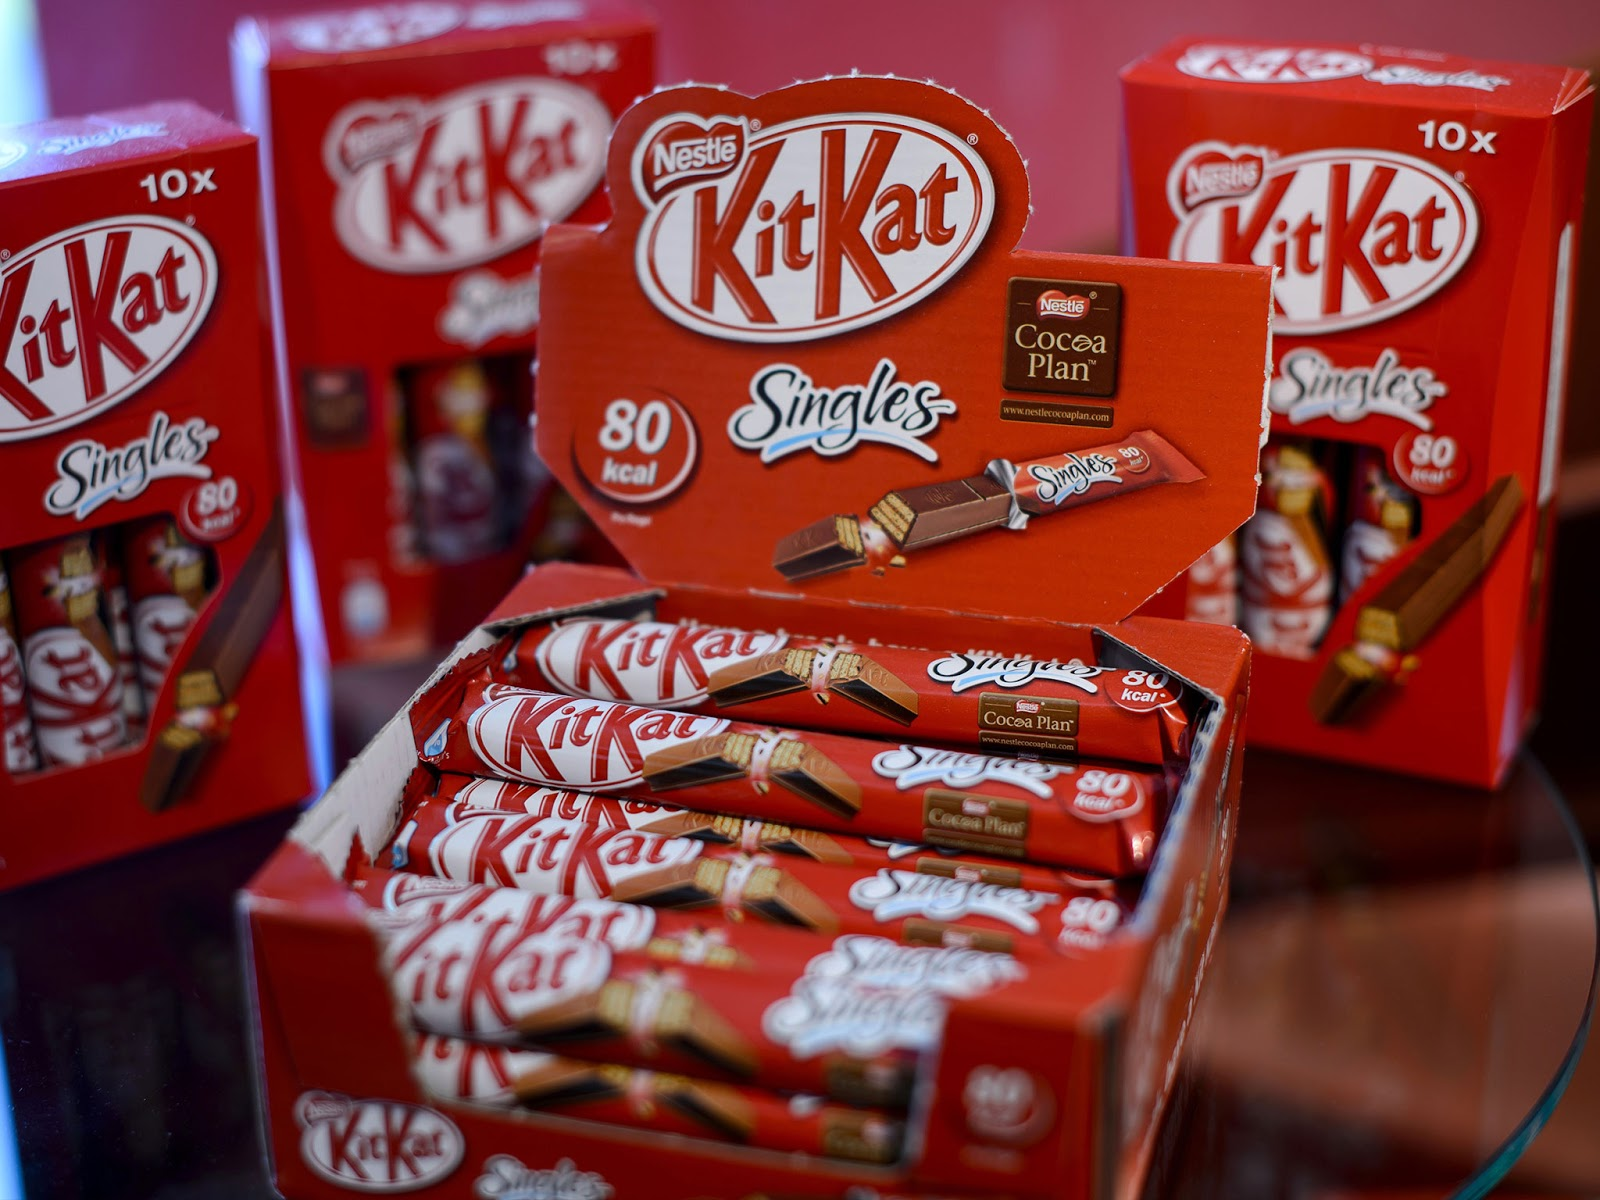 All Hd Wallpapers Kit Kat Chocolate Wallpapers In Hd